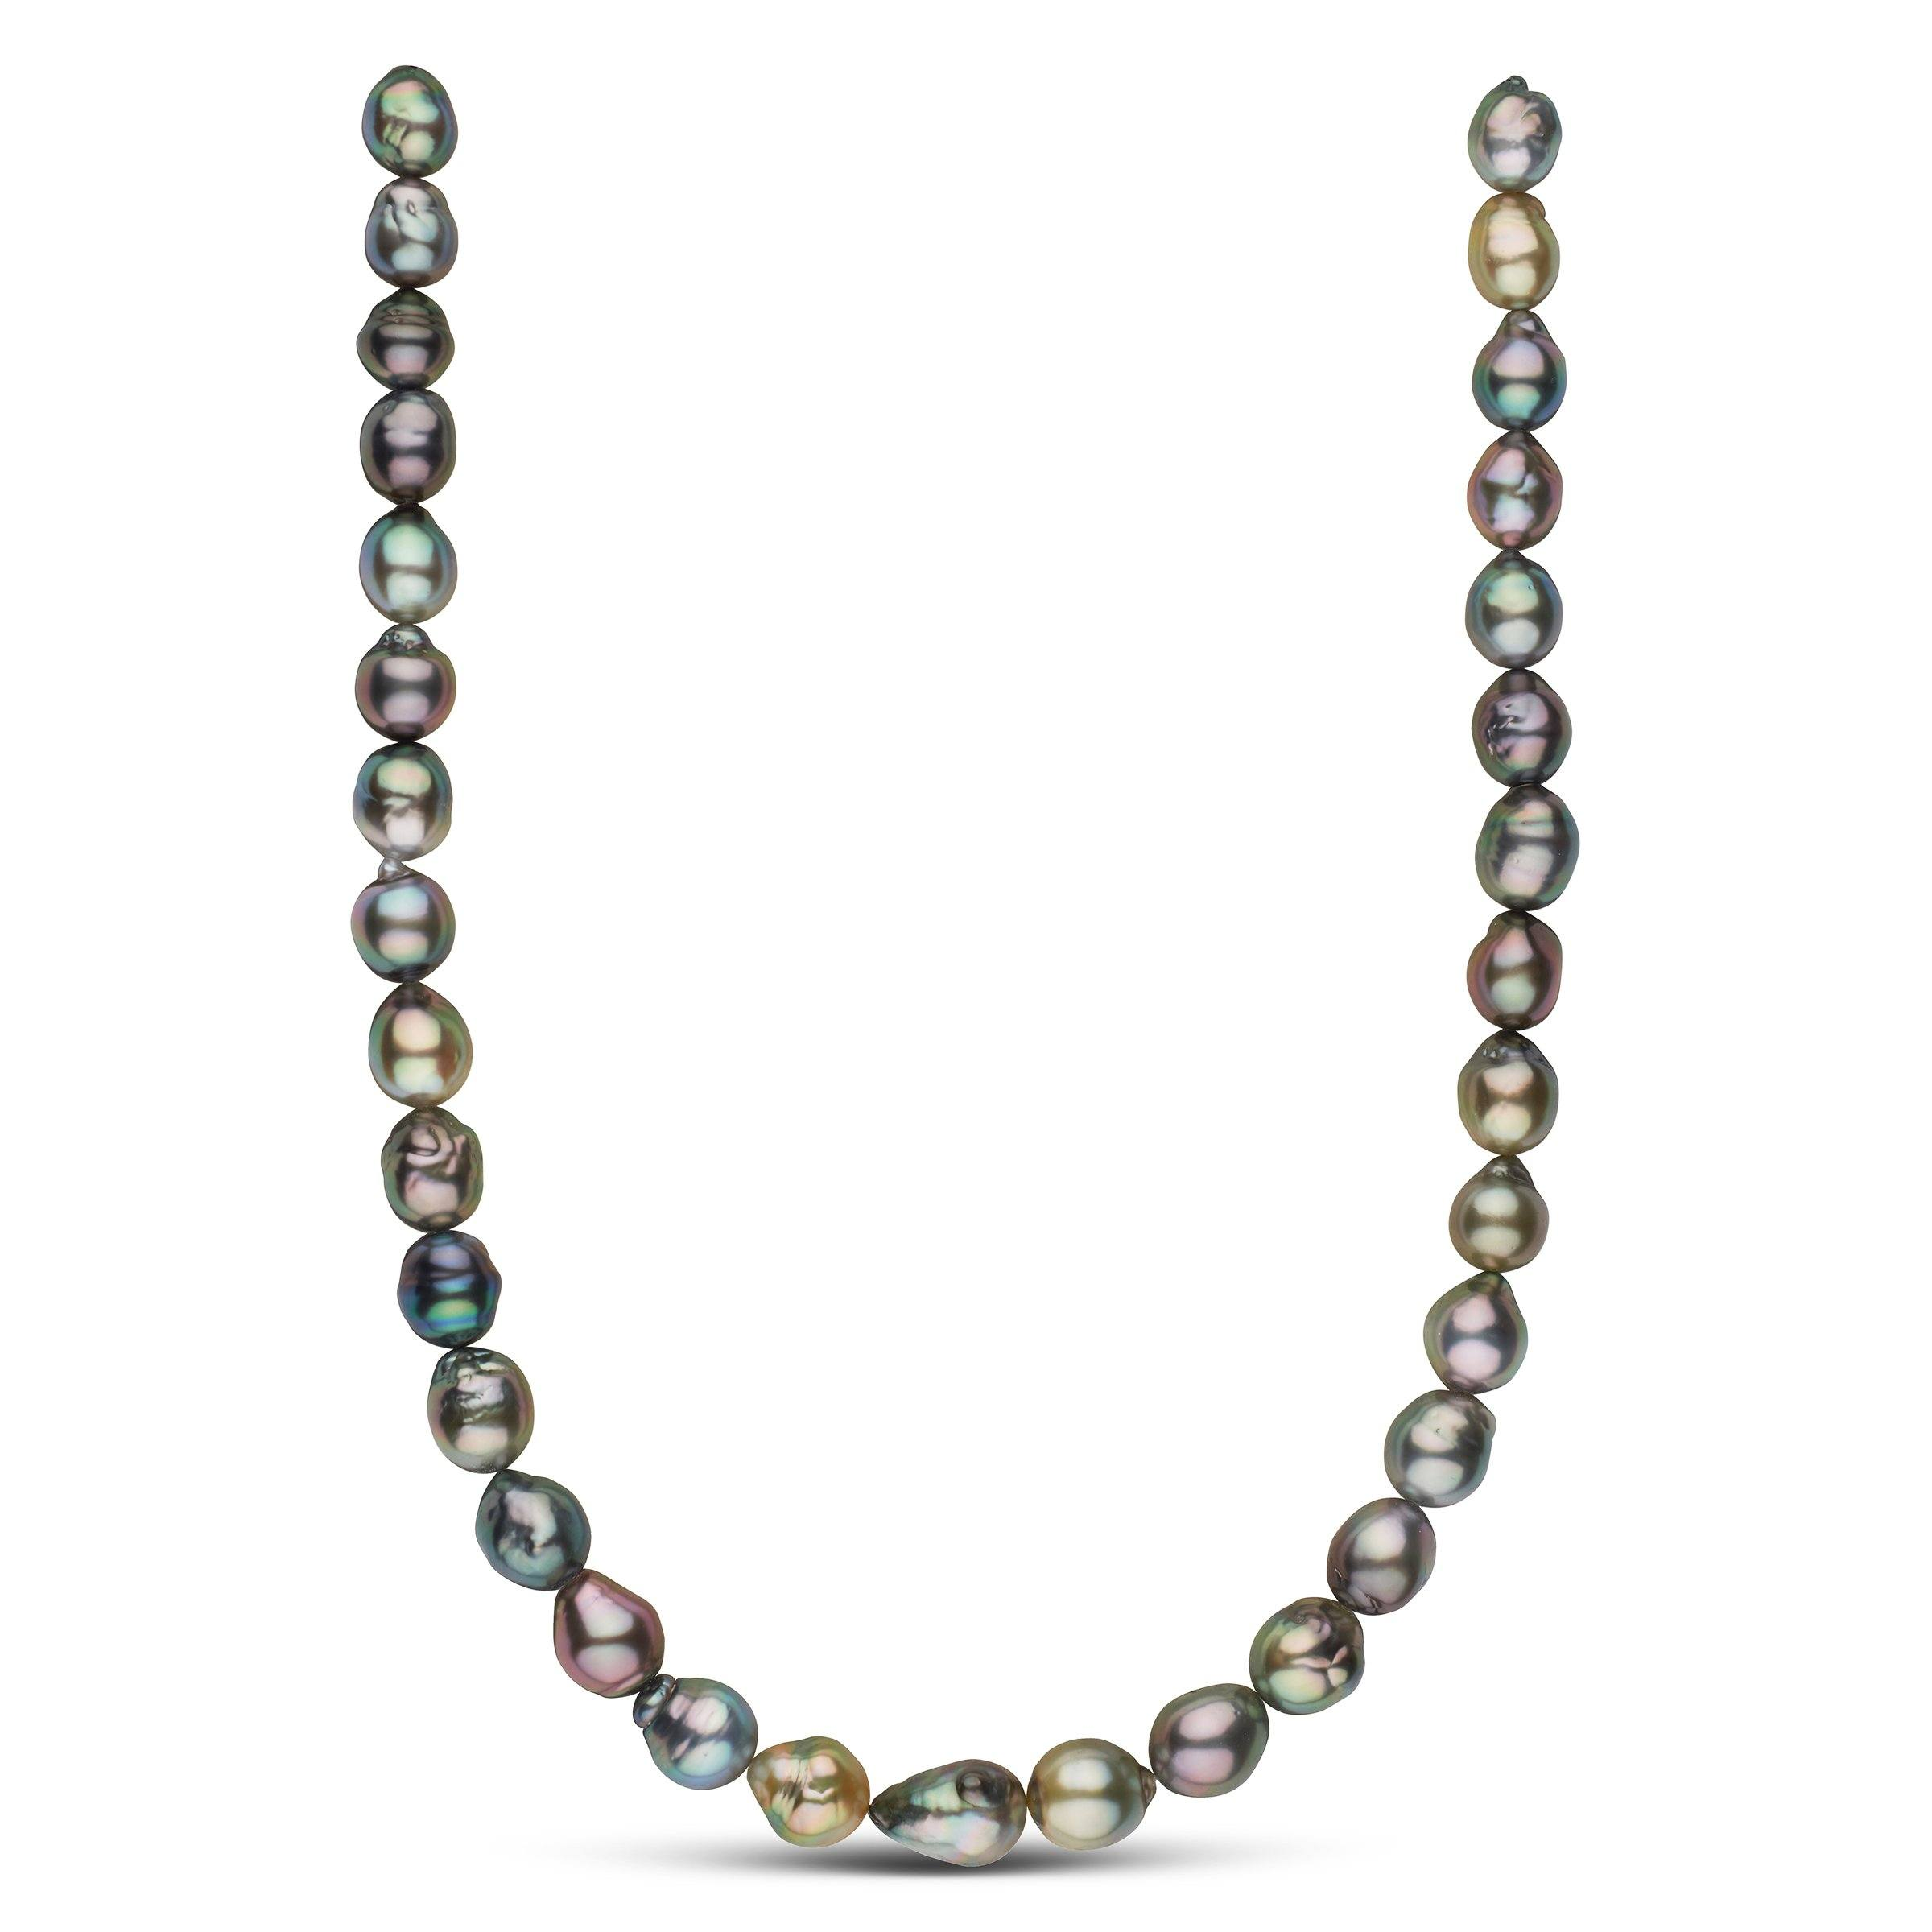 18-inch 10.1-11.6 mm AAA Freeform Baroque Tahitian Pearl Necklace